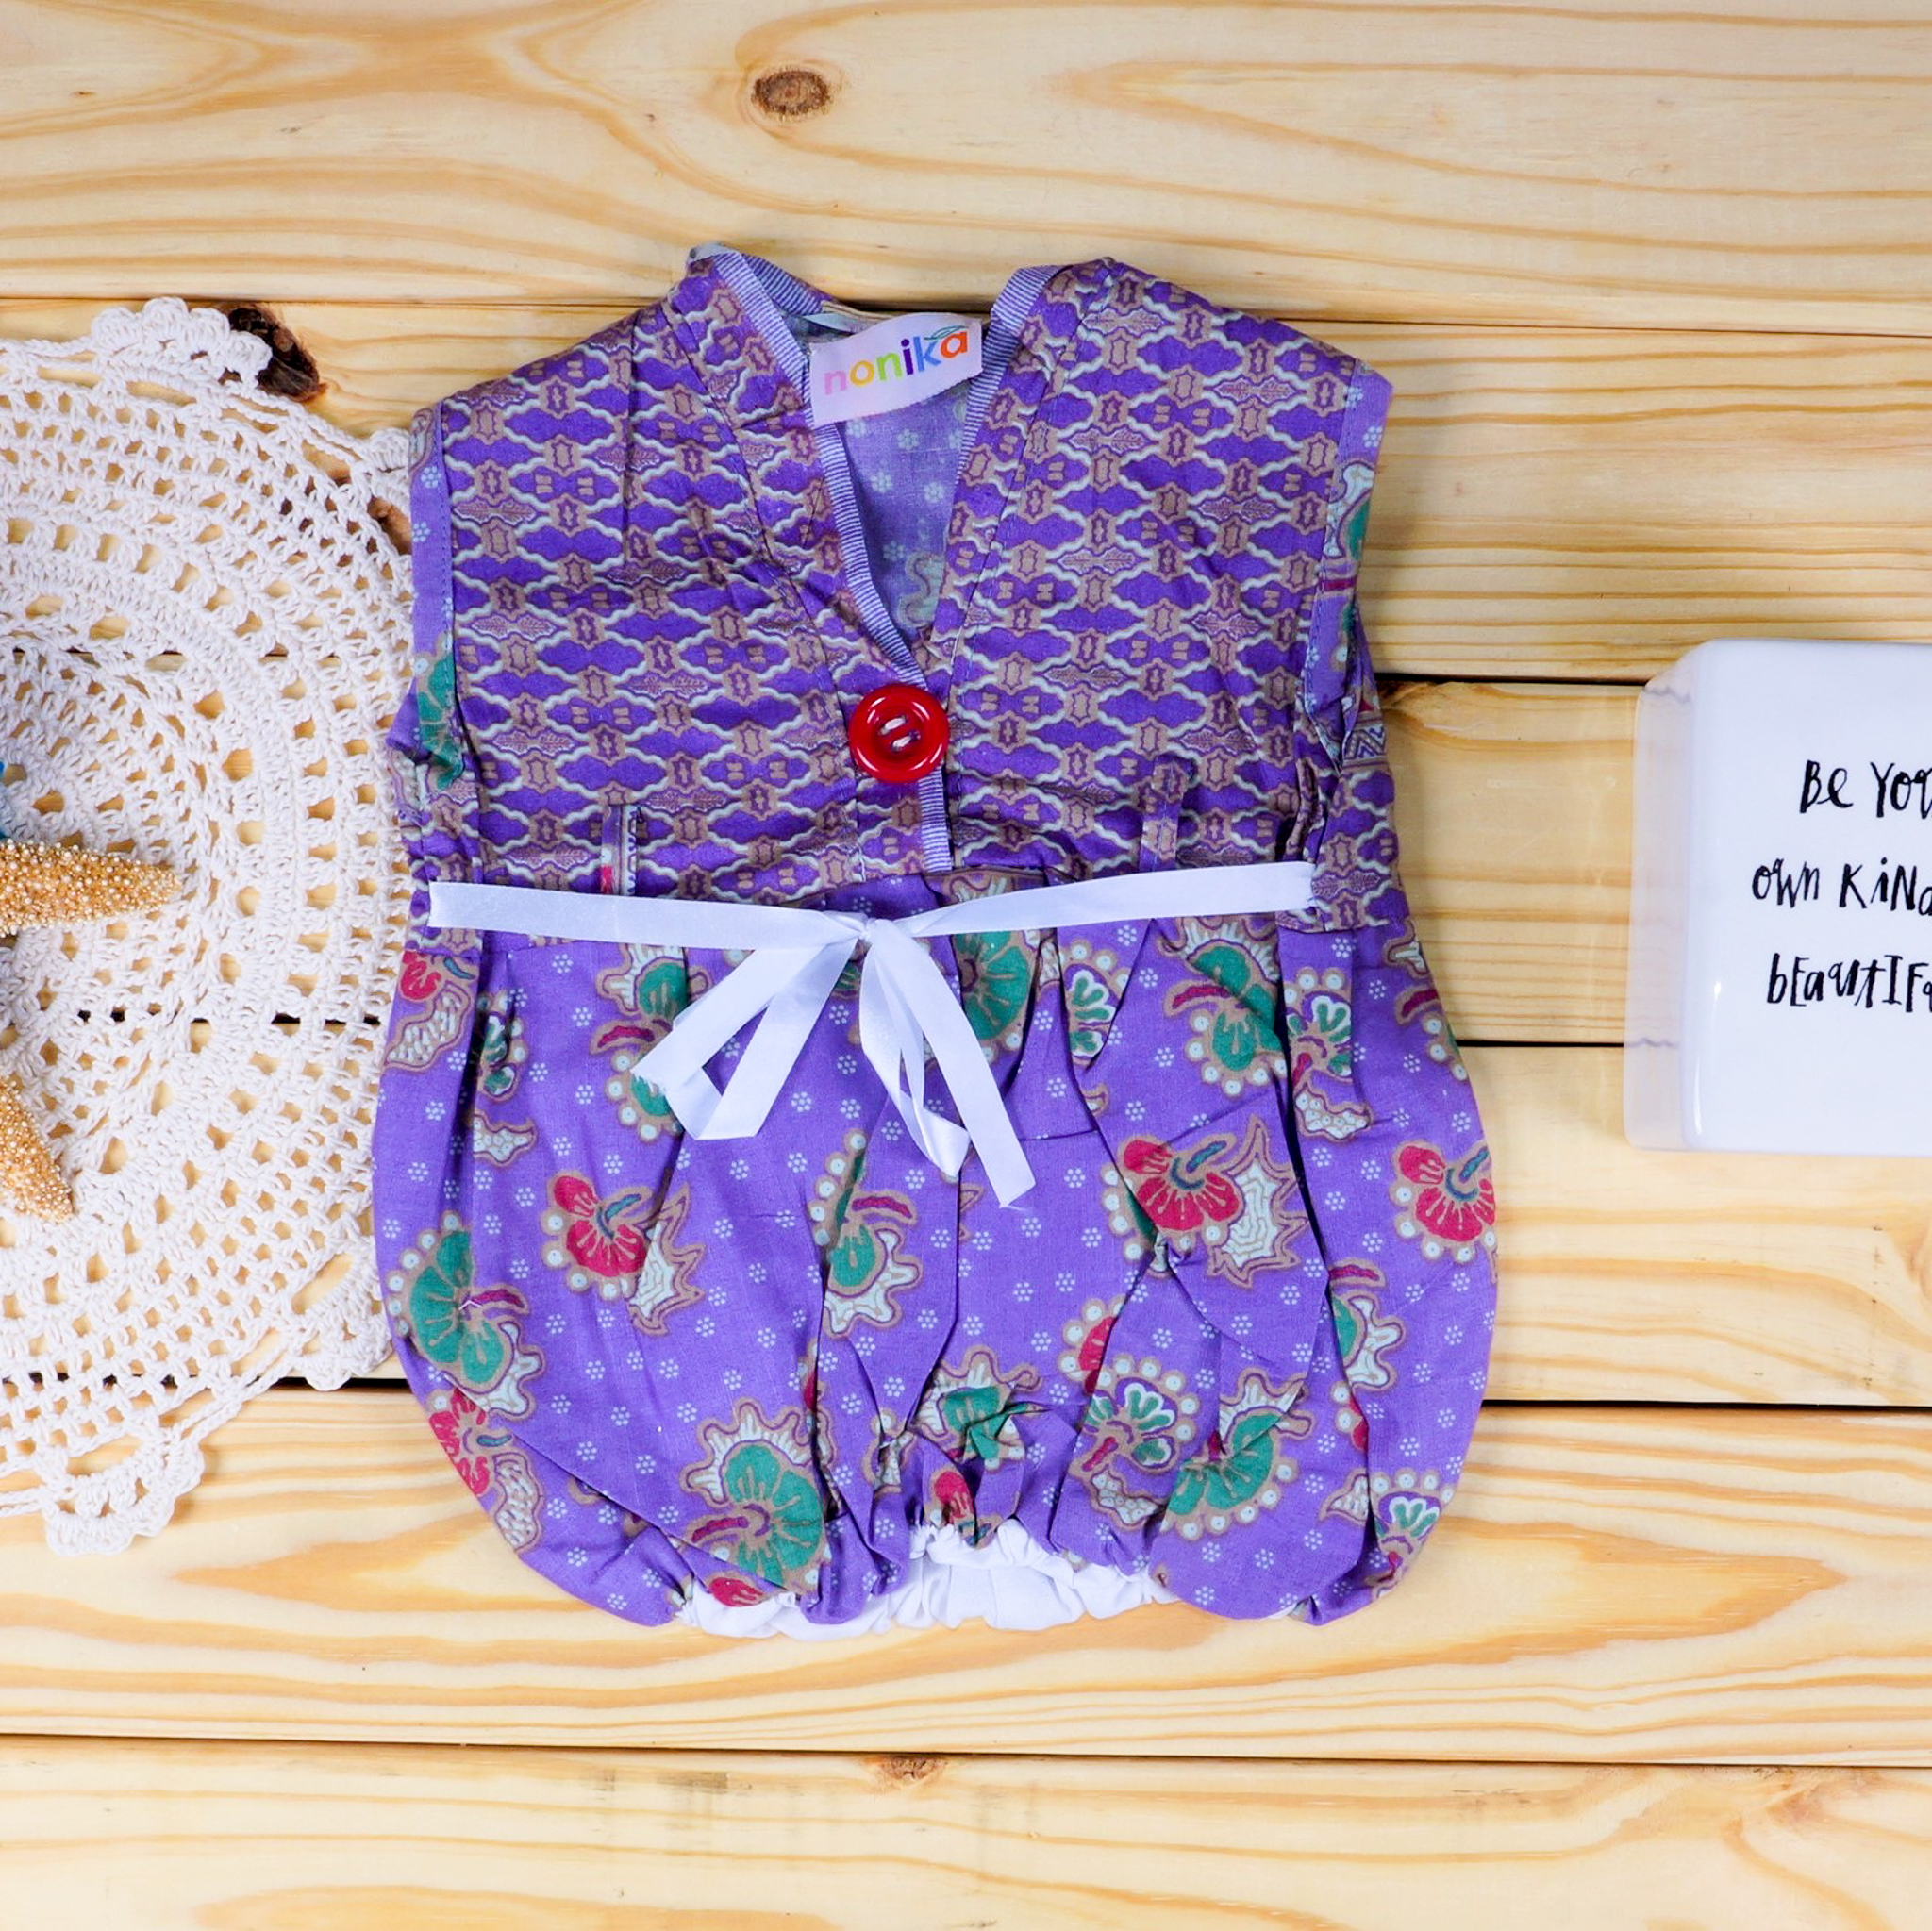 46f0b7acf11d Baby Batik Purple Floral Dress - Size 0-3 Month - My Nonika